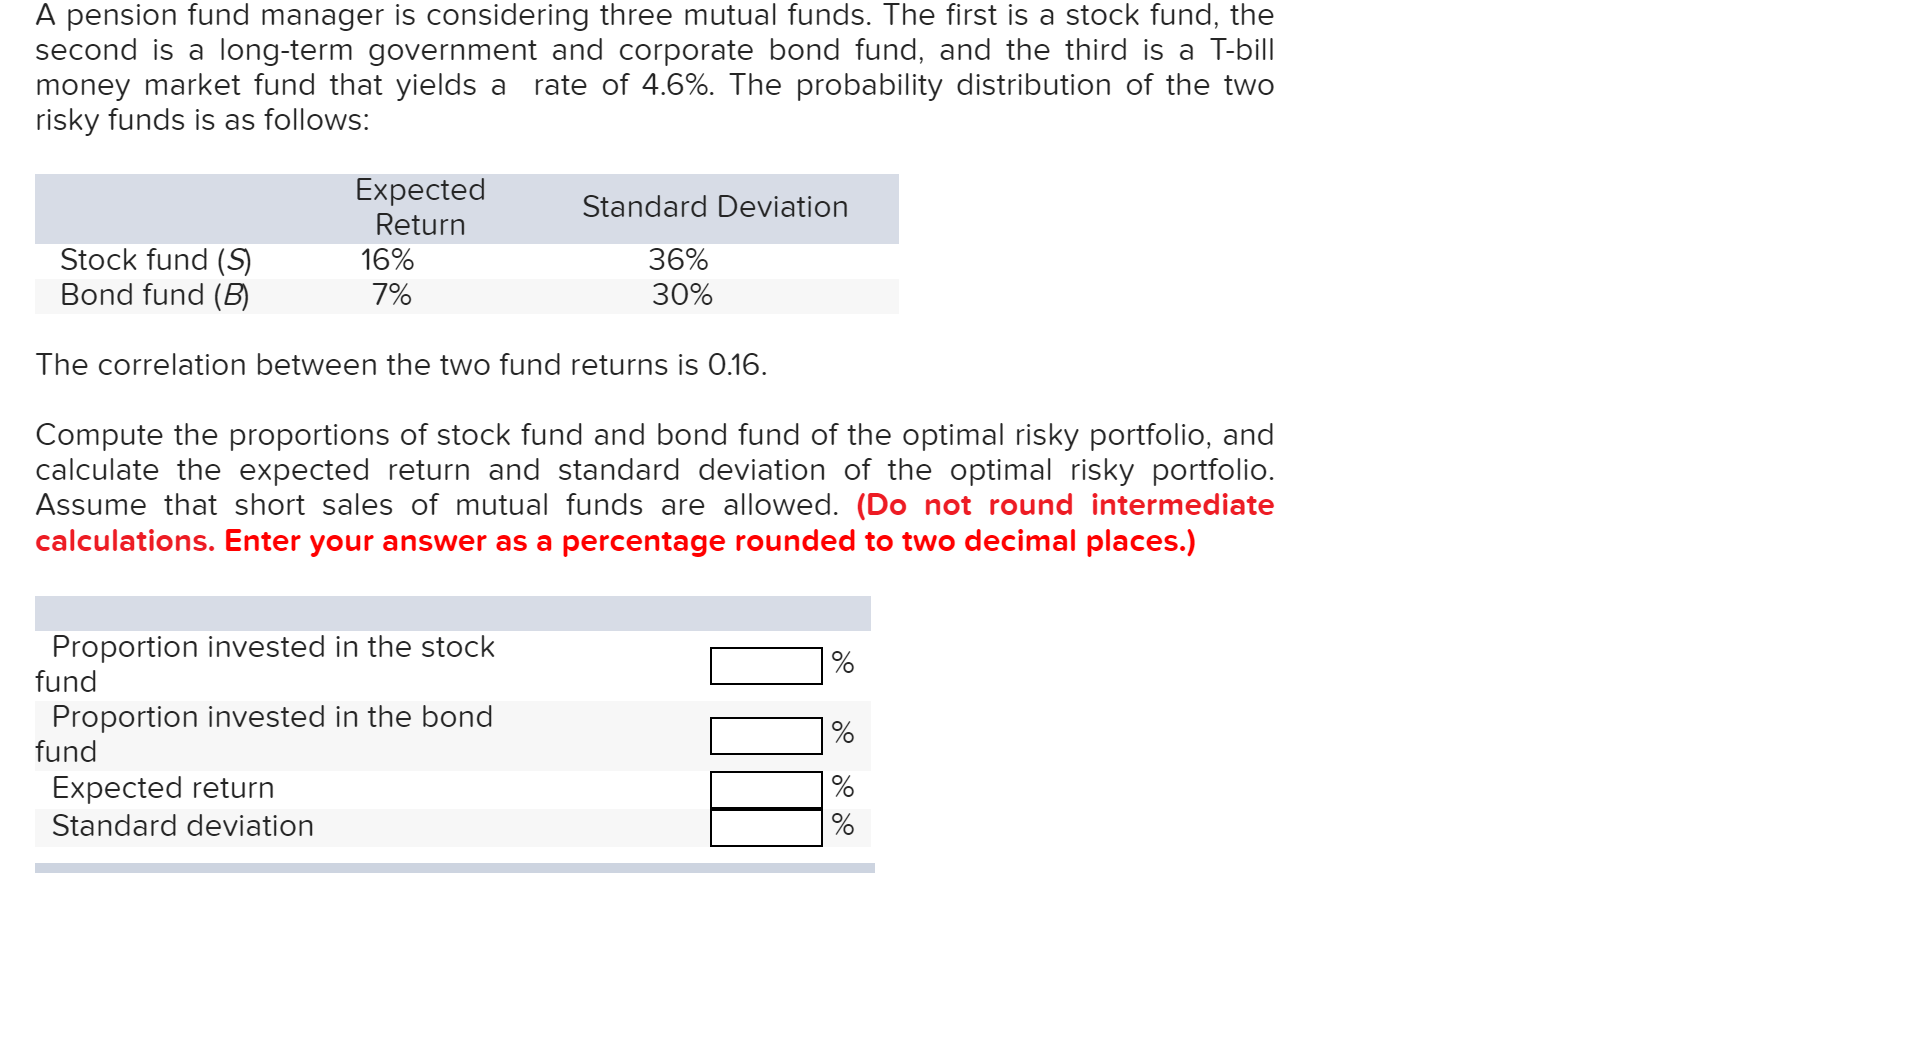 A pension fund manager is considering three mutual funds. The first is a stock fund, the long-term government and corporate bond fund, and the third is a T-bill rate of 4.6%. The probability distribution of the two second is a money market fund that yields a risky funds is as follows: Expected Return Standard Deviation Stock fund (S Bond fund (B 36% 30% 16% 7% The correlation between the two fund returns is 0.16. Compute the proportions of stock fund and bond fund of the optimal risky portfolio, and calculate the expected return and standard deviation of the optimal risky portfolio. Assume that short sales of mutual funds are allowed. (Do not round intermediate calculations. Enter your answer as a percentage rounded to two decimal places.) Proportion invested in the stock fund % Proportion invested in the bond fund % Expected return Standard deviation